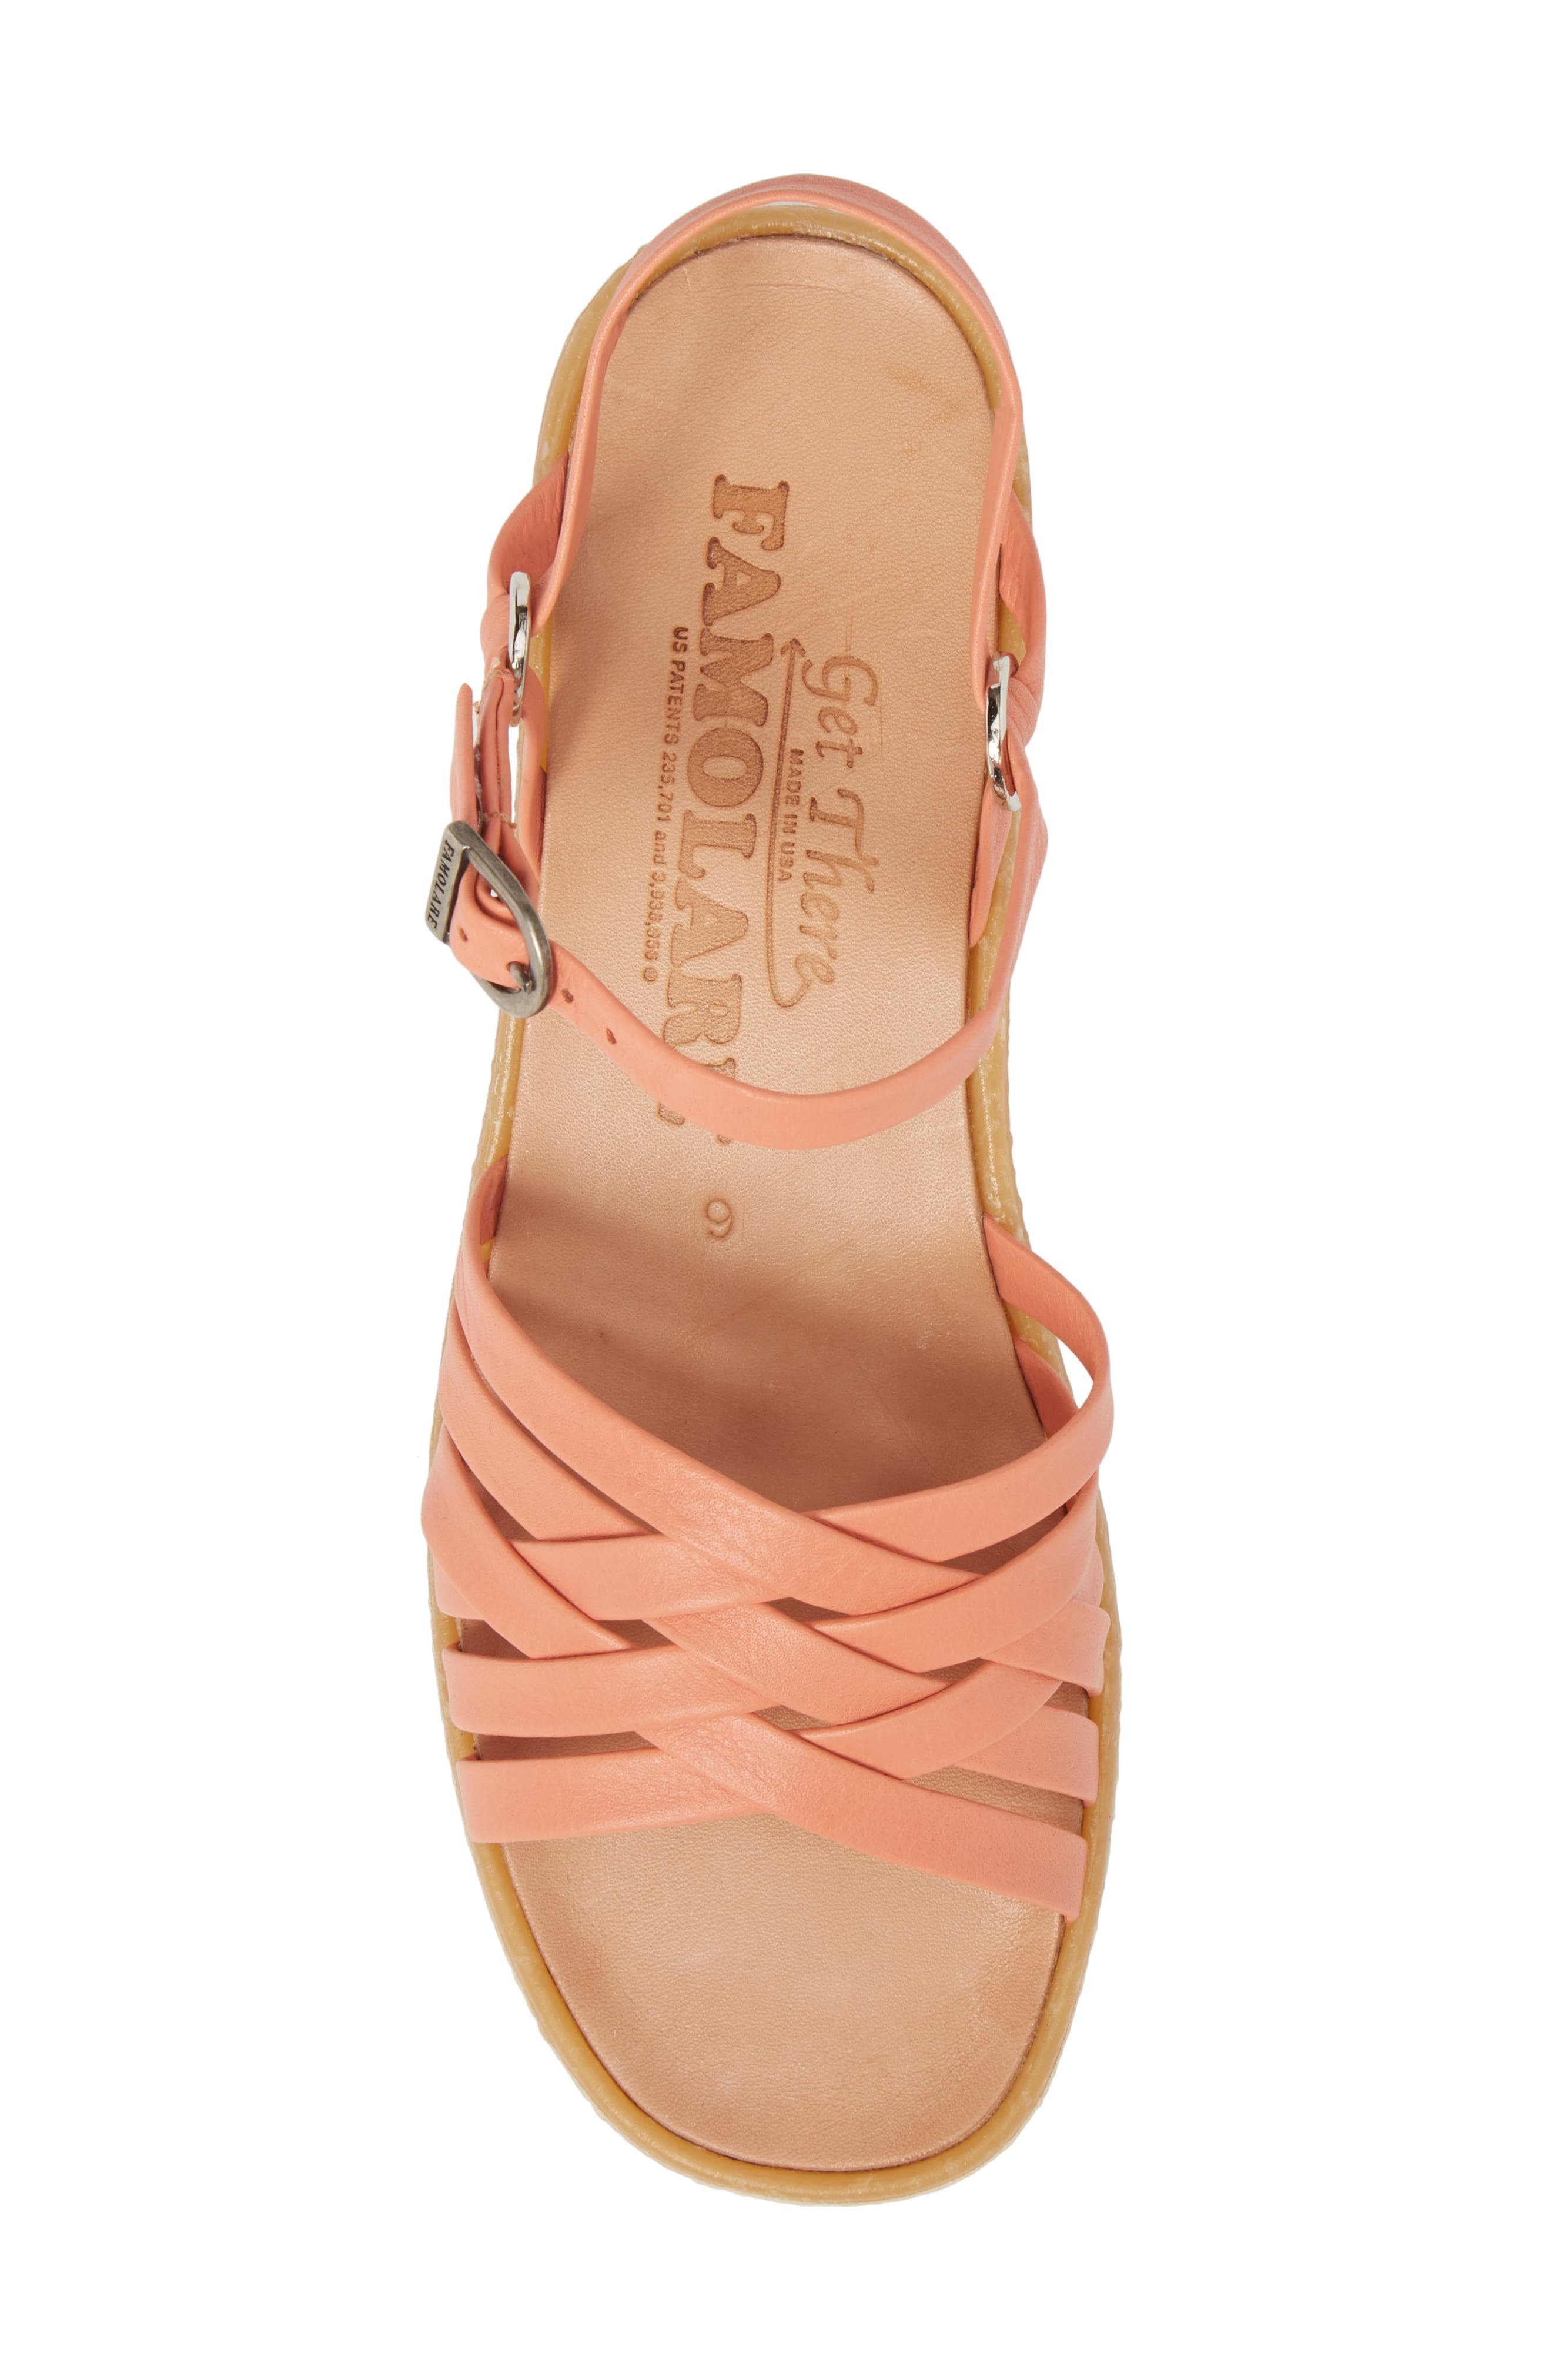 Strappy Camper Sandal,                             Alternate thumbnail 5, color,                             Salmon Leather